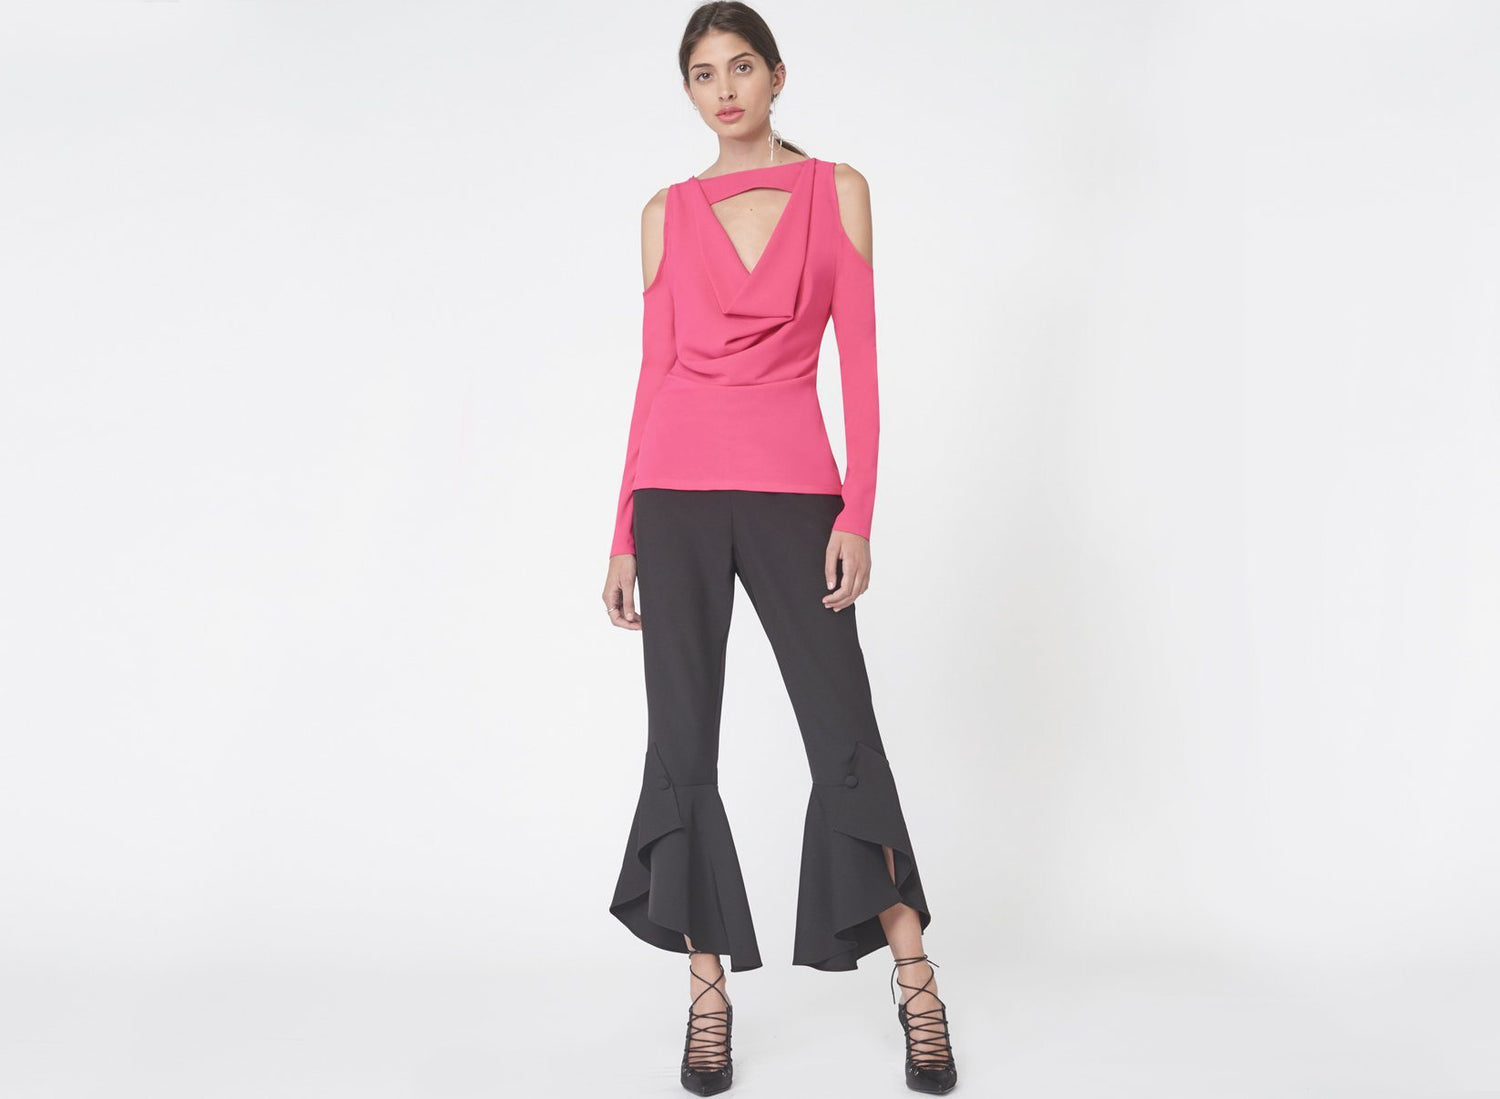 Cold Shoulder Cowl Neck Top in Fuchsia Pink